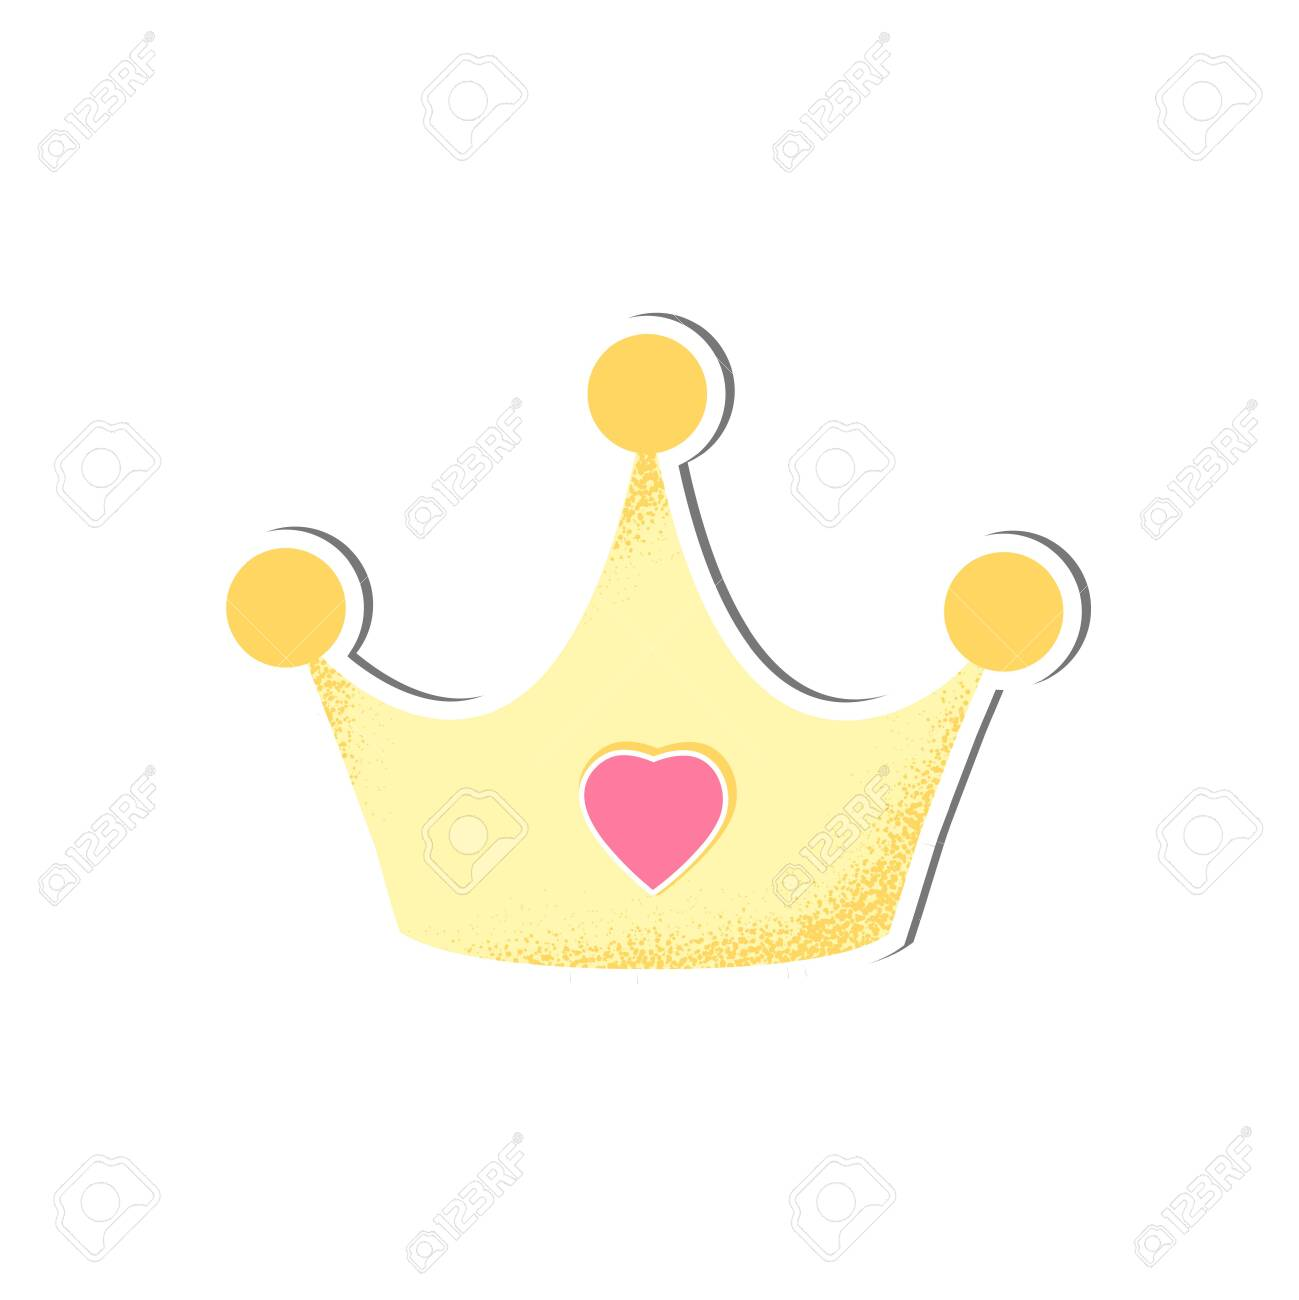 Baby Isolated Crown Vector For Girl Cartoon Style Icon Of Wear Royalty Free Cliparts Vectors And Stock Illustration Image 123810401 Find & download the most popular crown cartoon vectors on freepik free for commercial use high quality images made for creative projects. baby isolated crown vector for girl cartoon style icon of wear